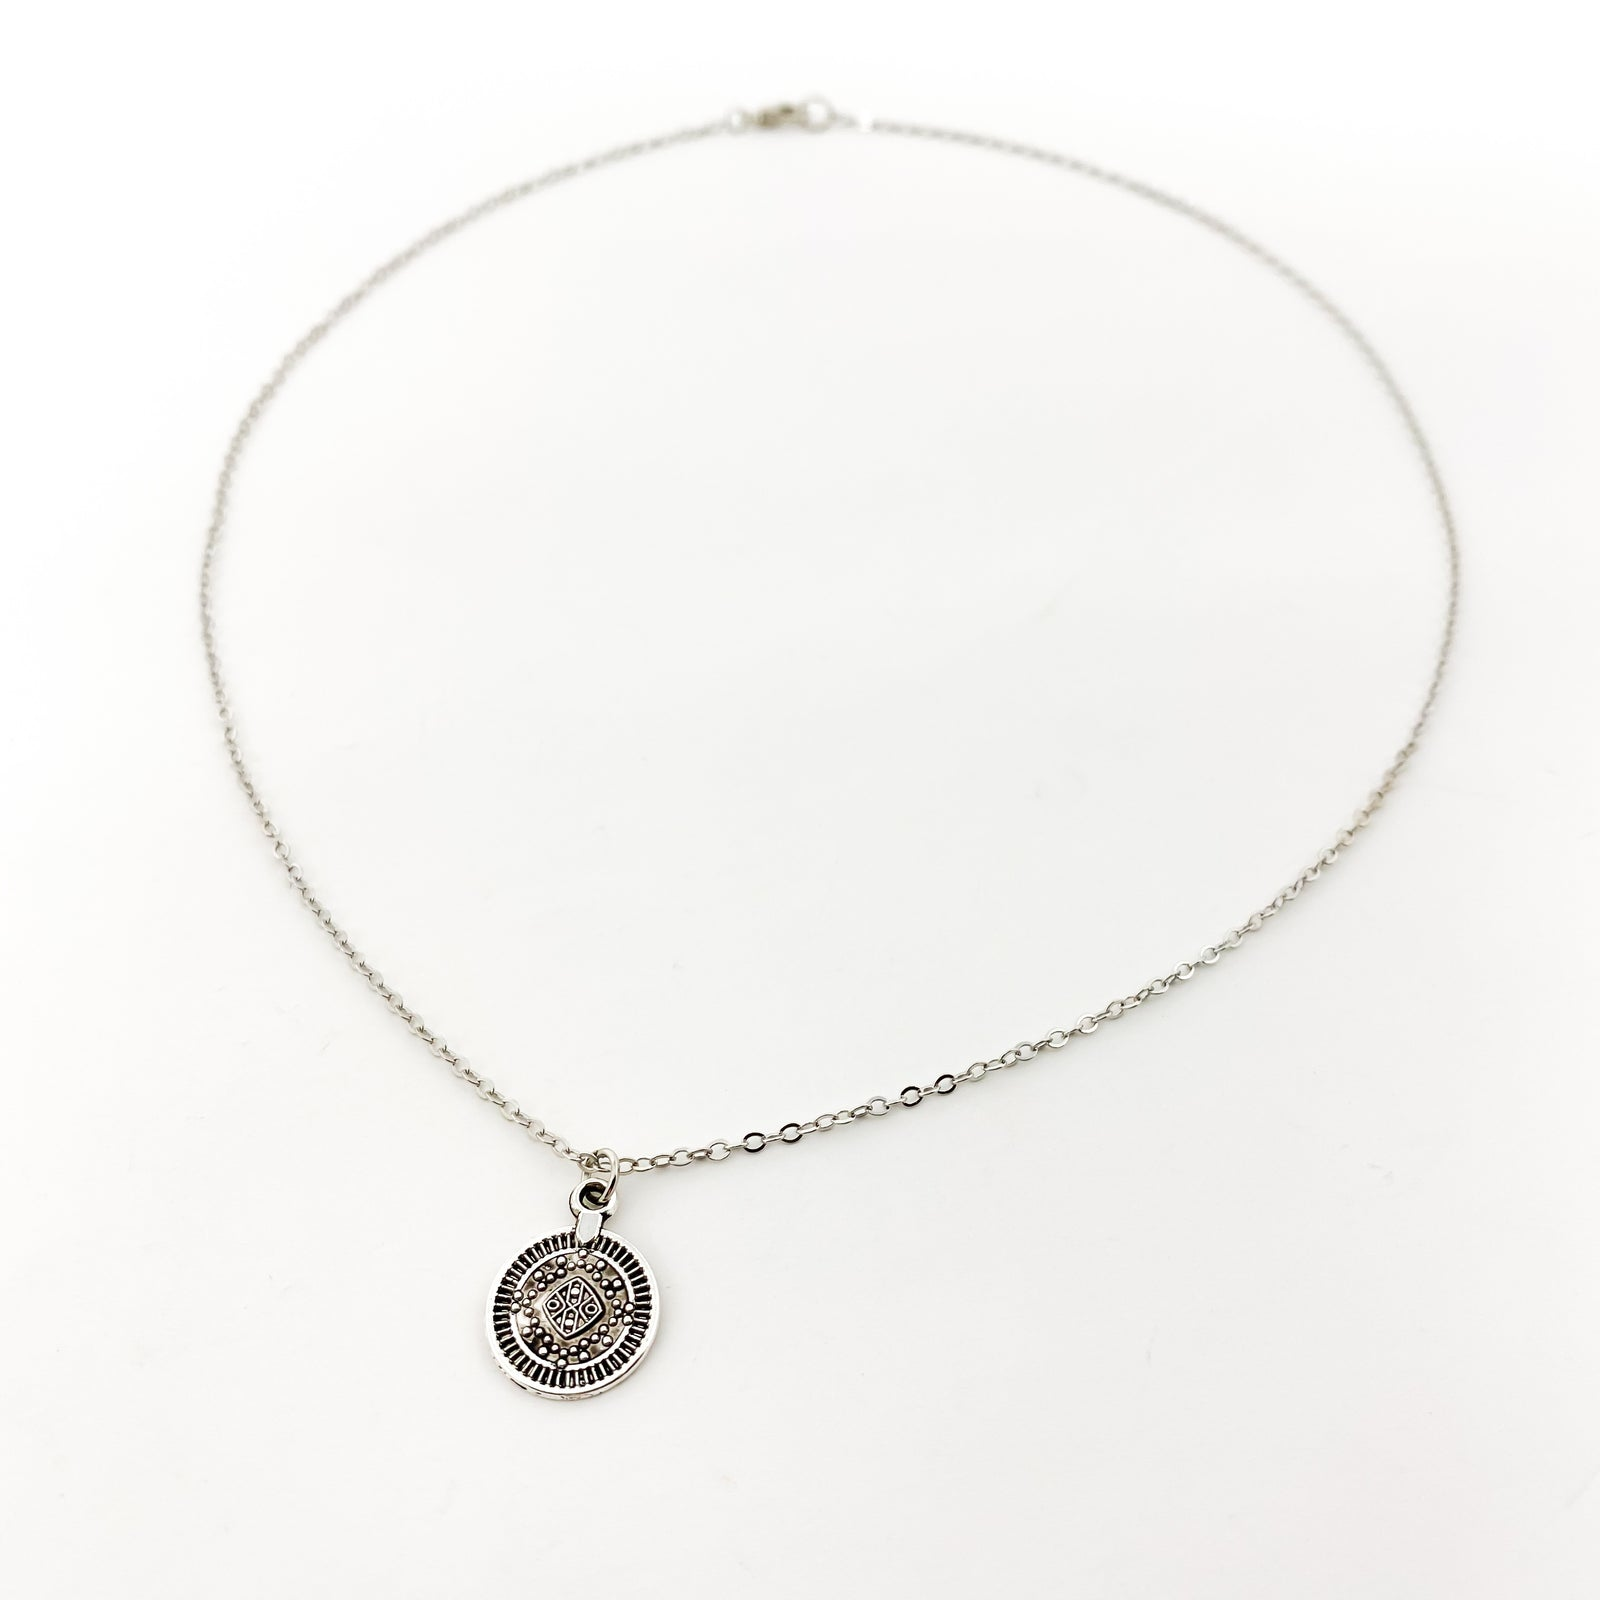 MINI MEDALLION PENDANT NECKLACE | SILVER